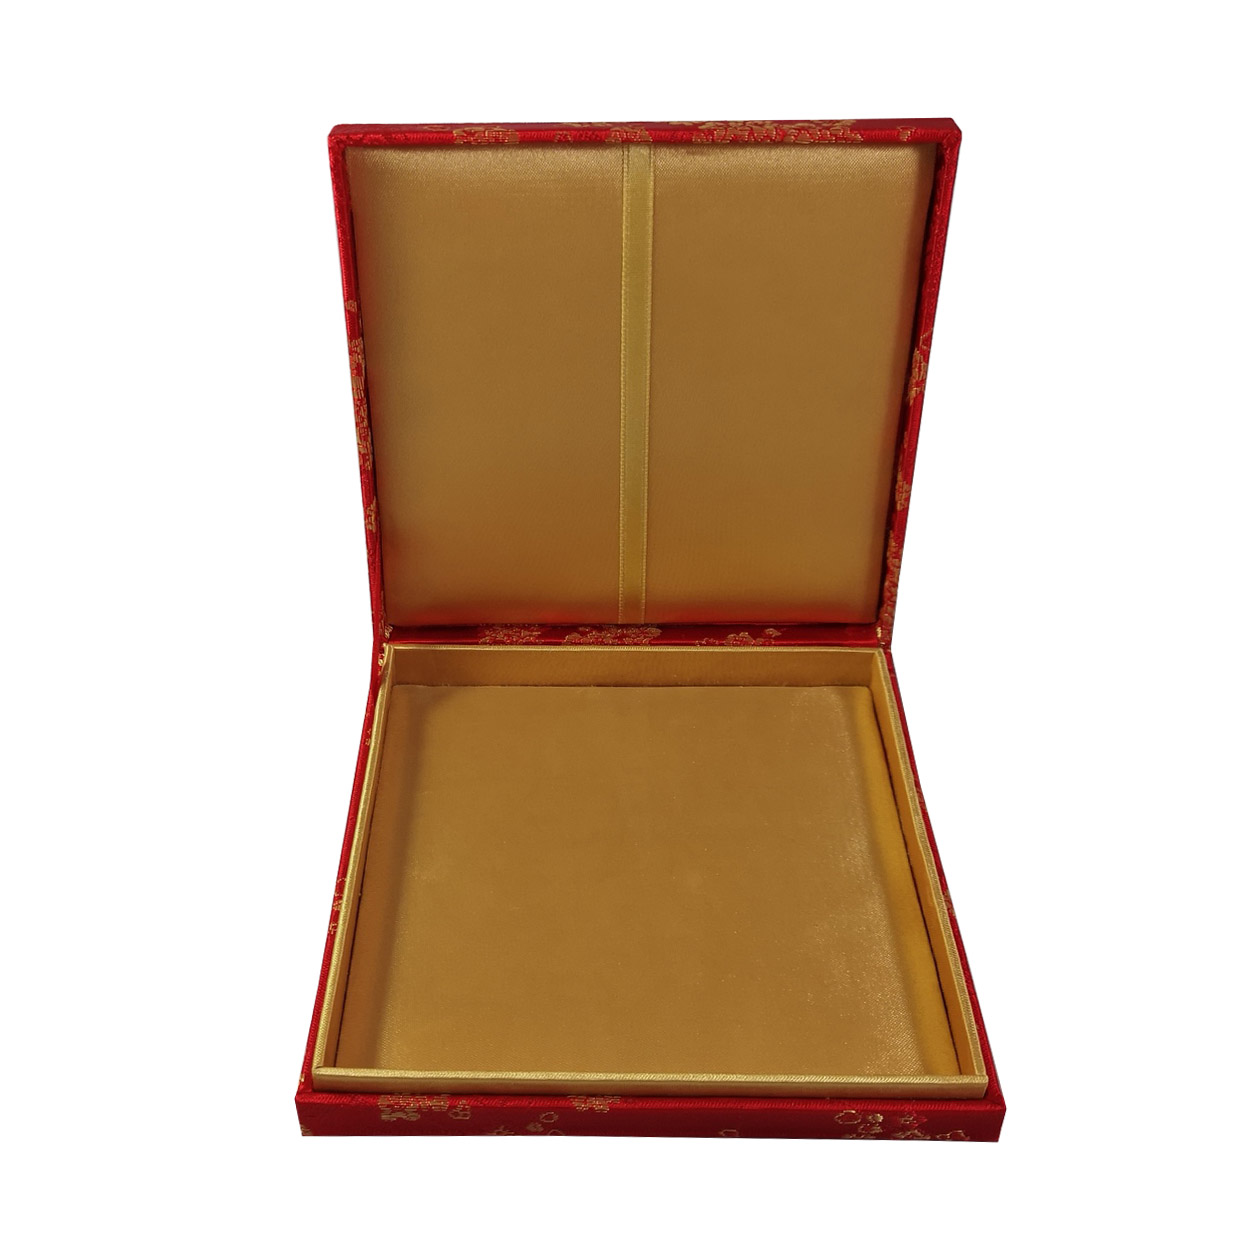 Golden silk box